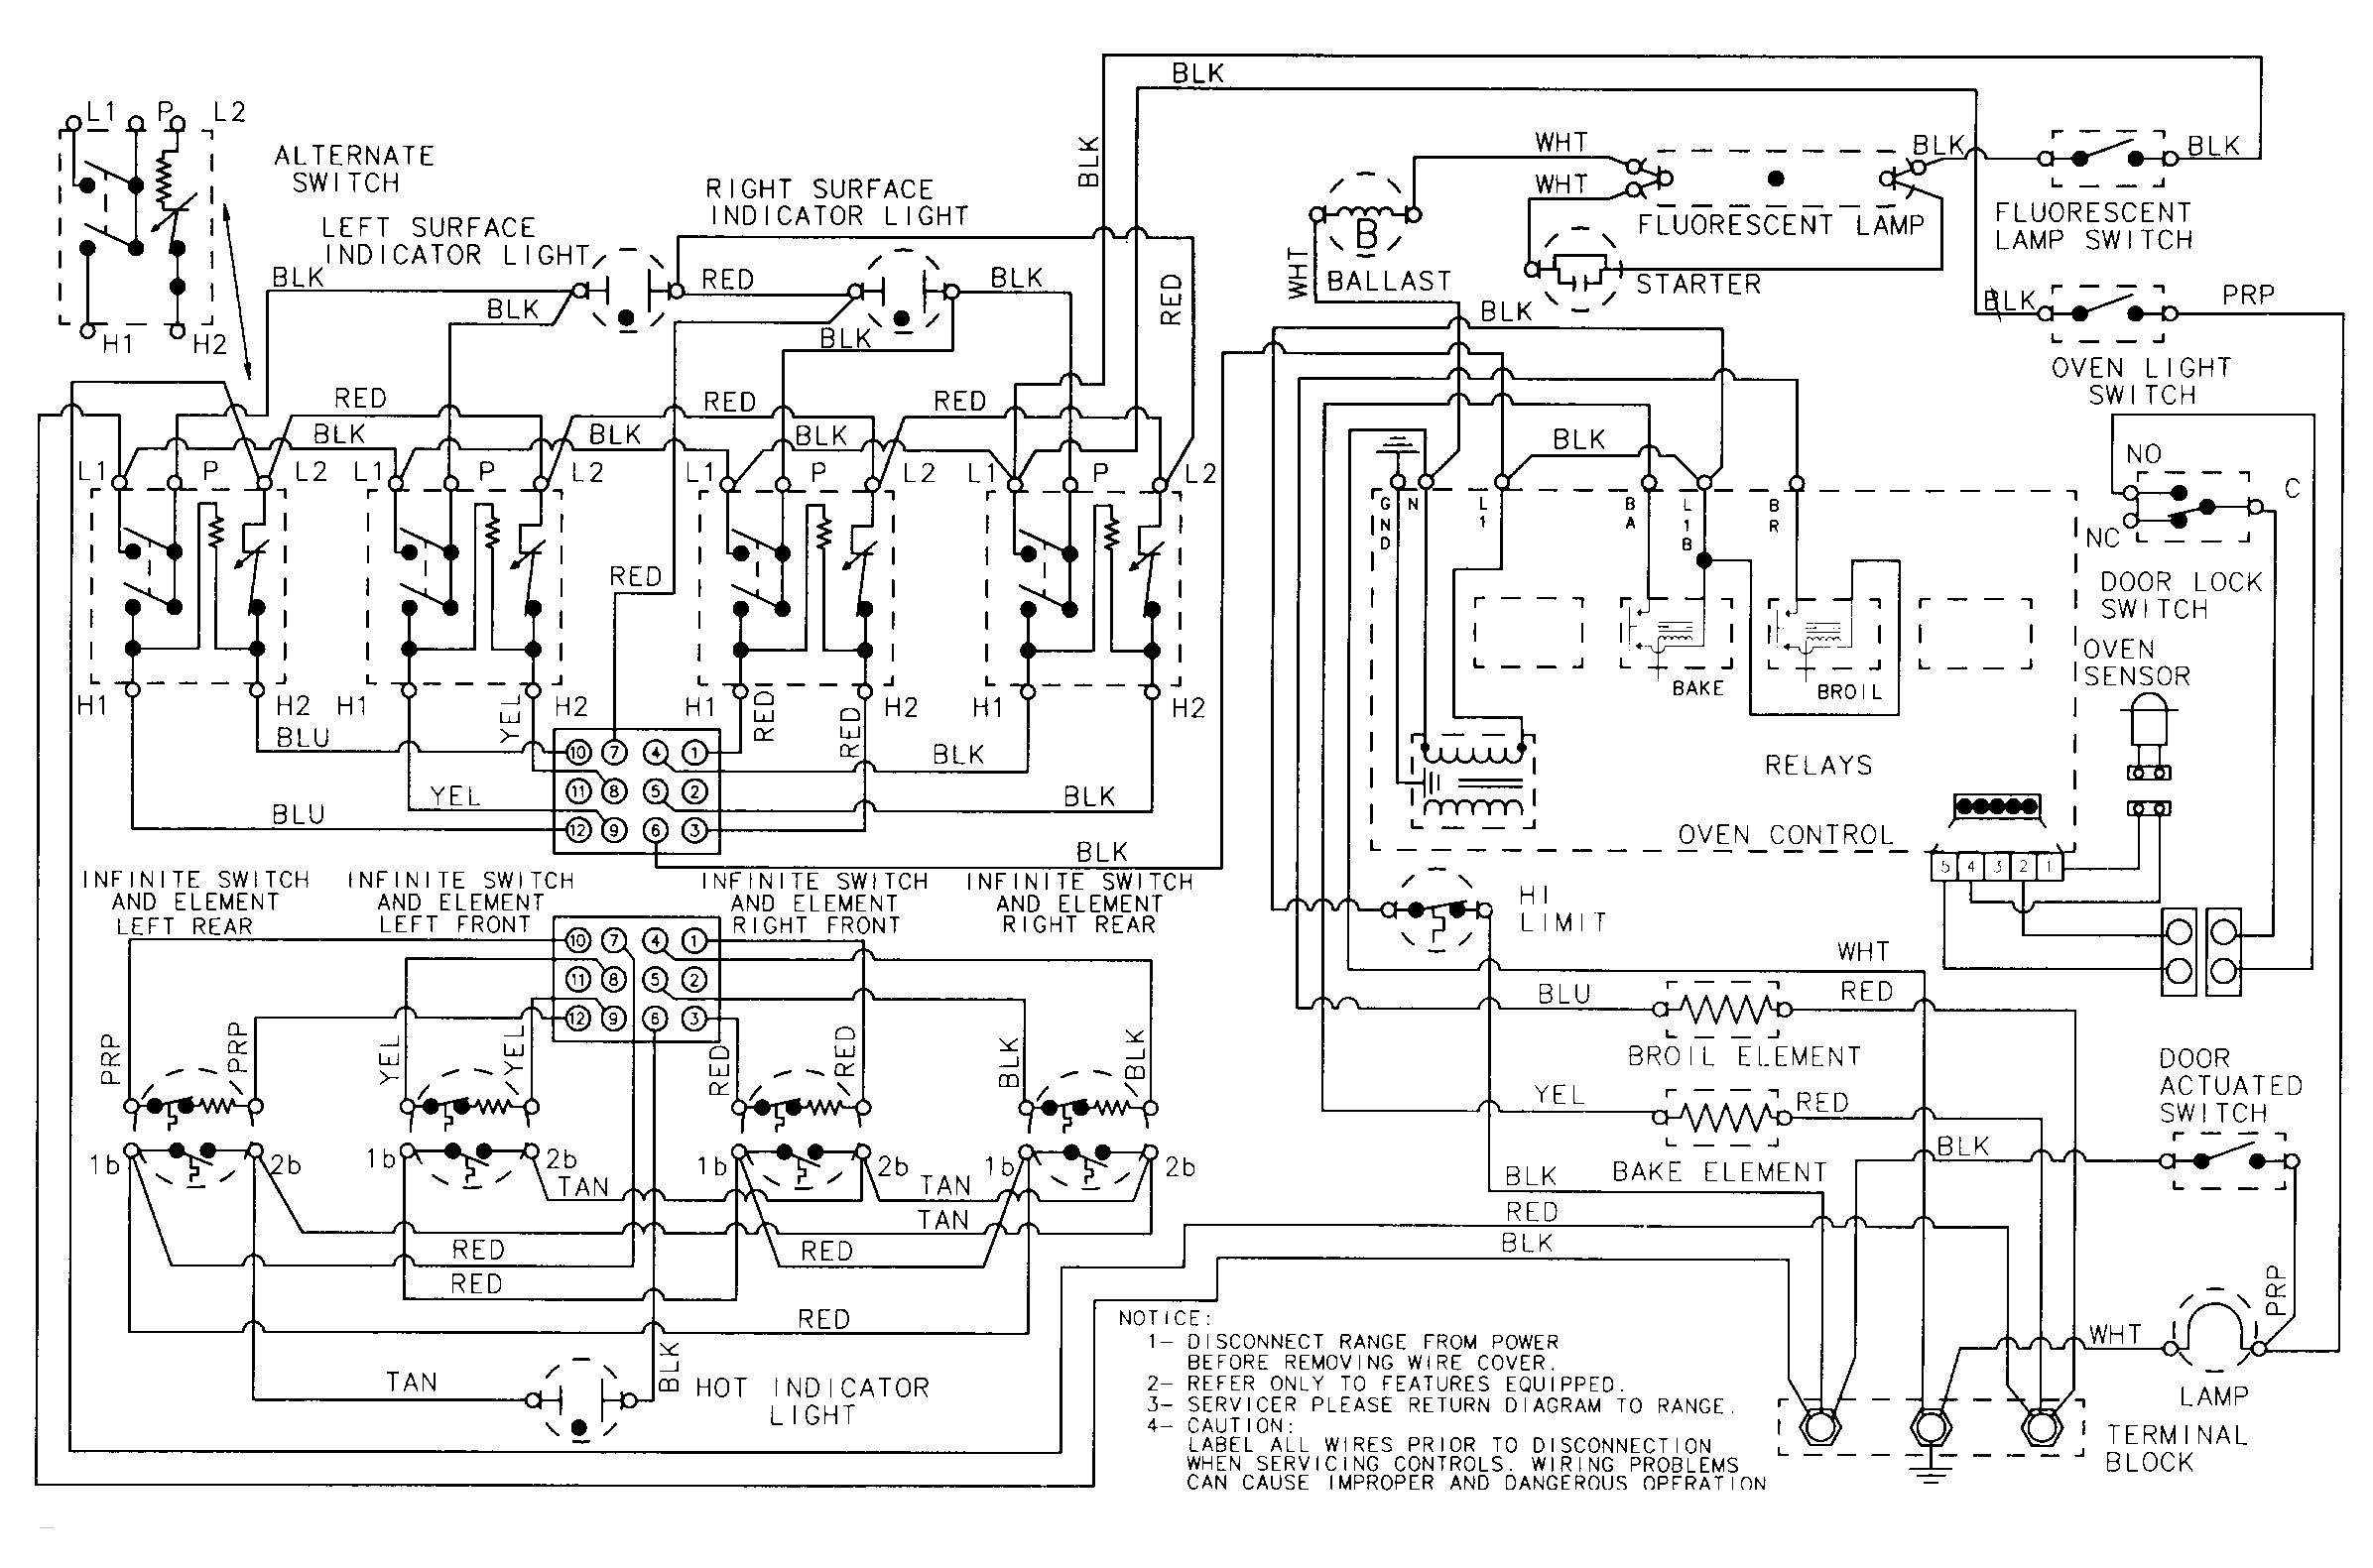 Elec Wiring Diagram Download Maytag Cre9600 Timer Stove Clocks and Appliance Timers